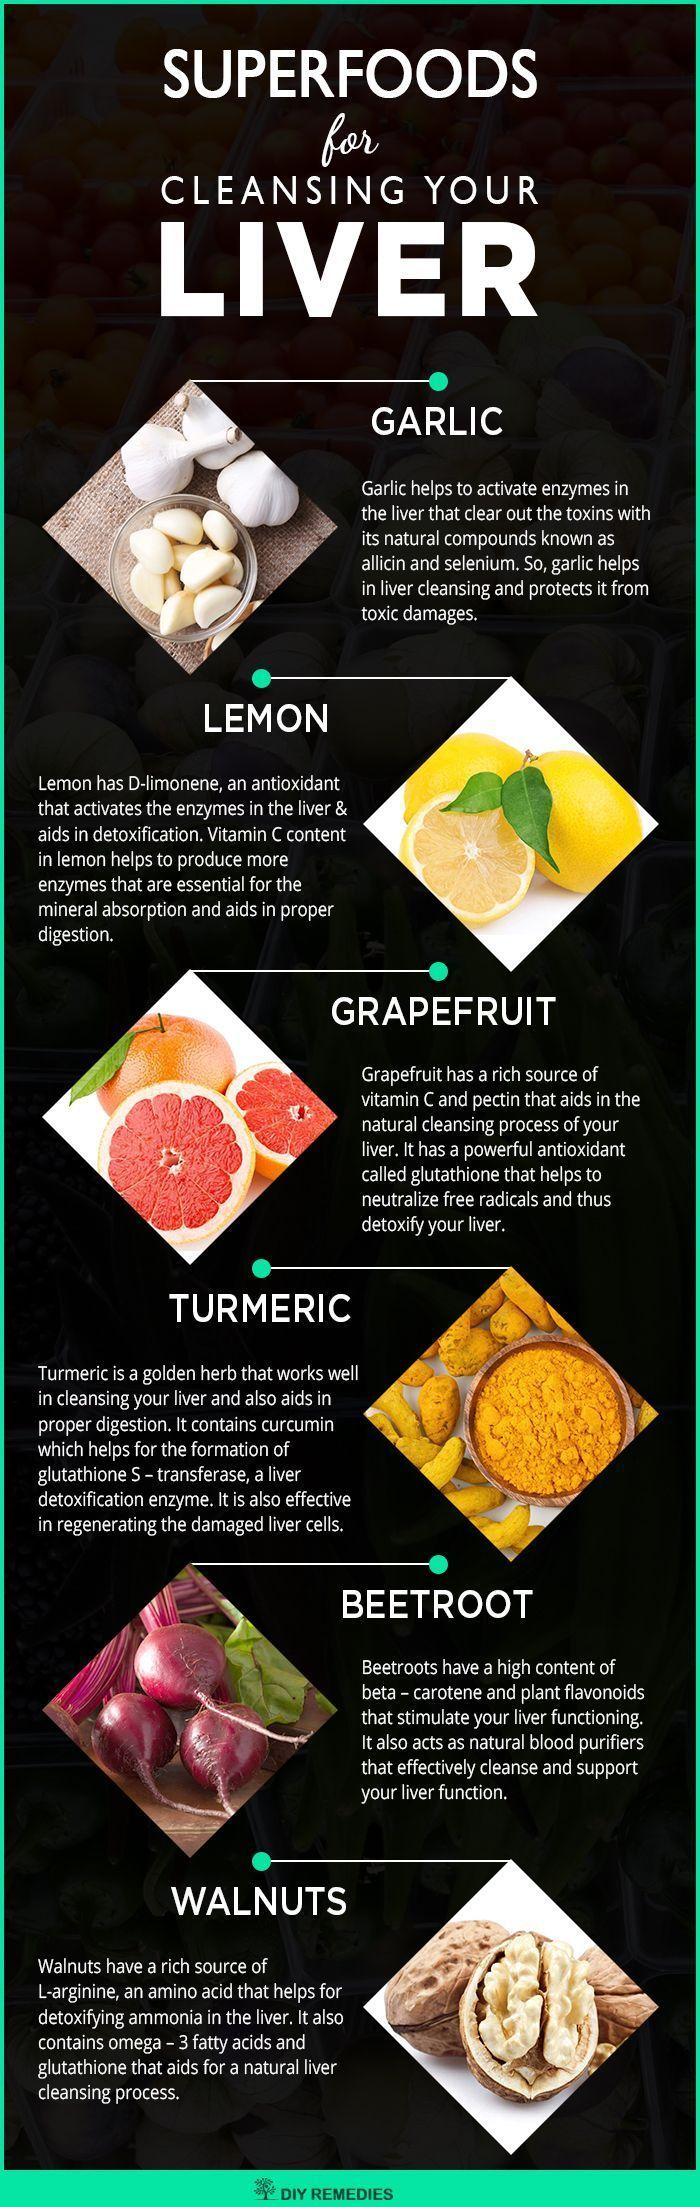 Best Liver Cleansing Superfoods Here is the list that covers the best superfoods...